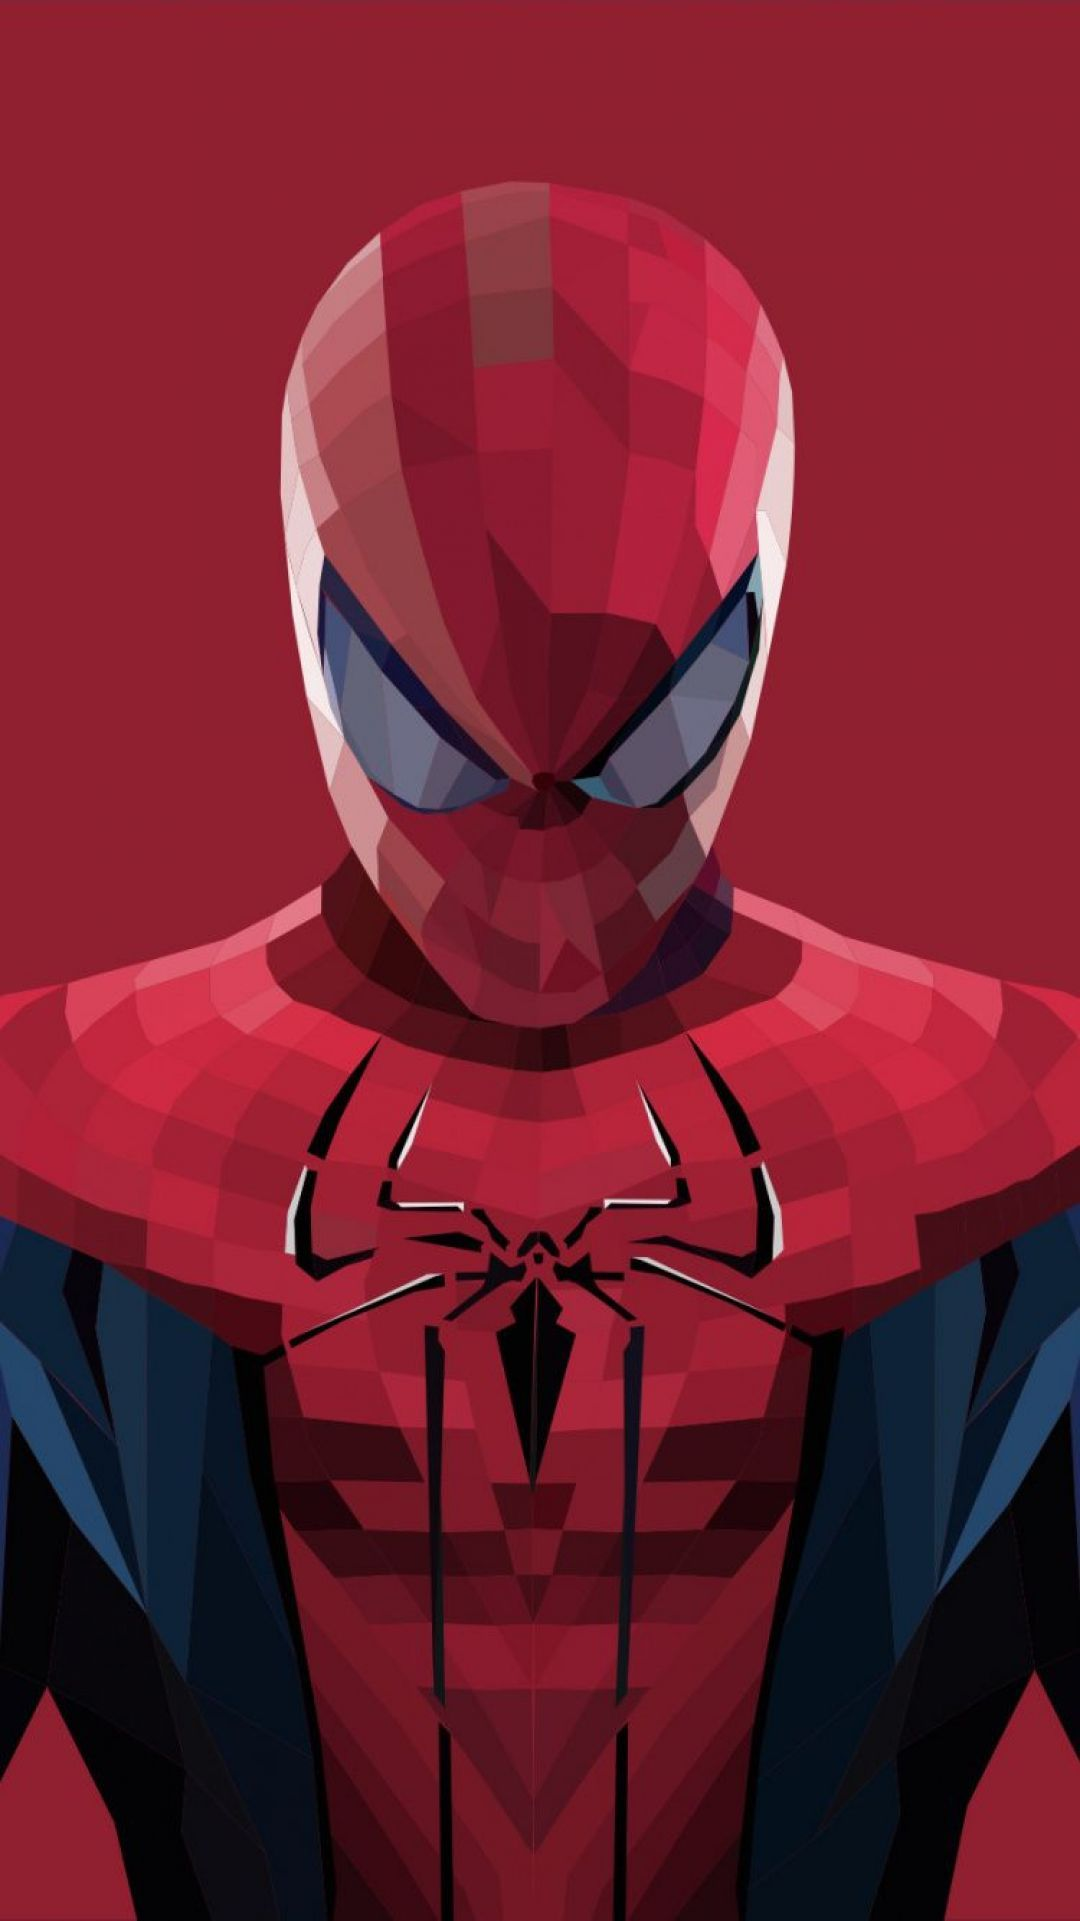 Abstract Spider Man Android Iphone Desktop Hd Backgrounds Wallpapers 1080p 4k 100222 Marvel Comics Wallpaper Superhero Wallpaper Avengers Wallpaper